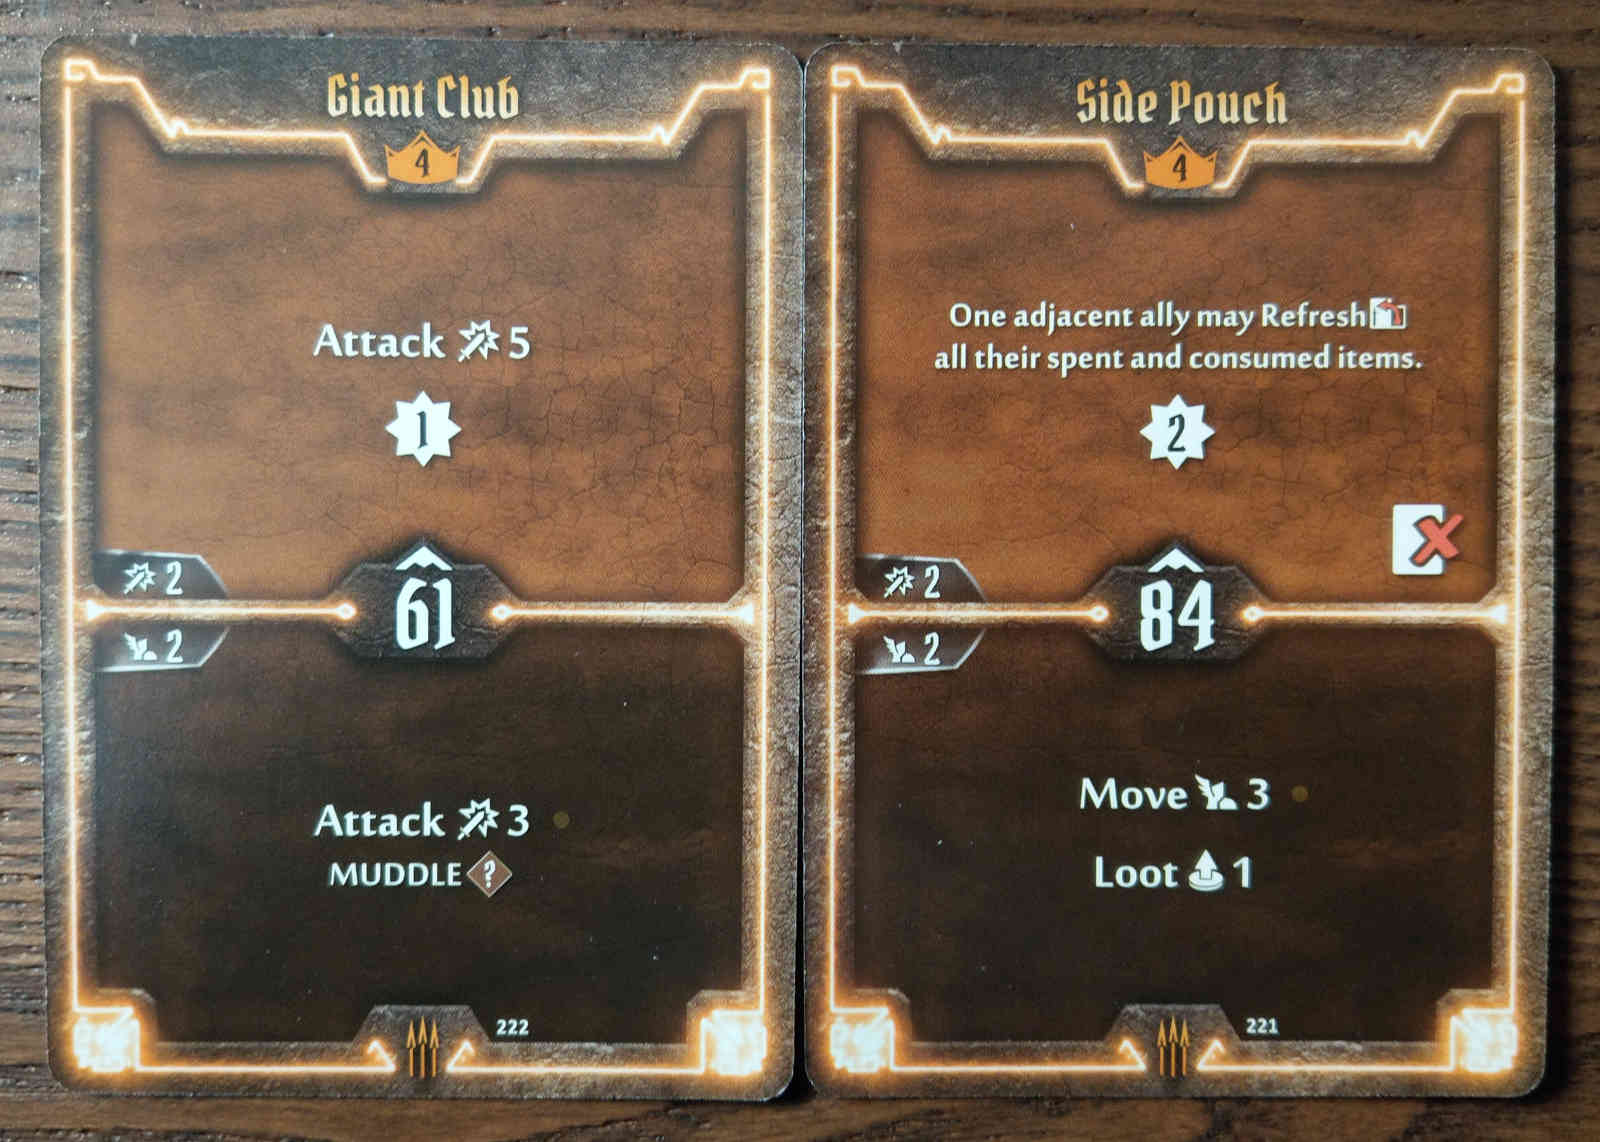 Level 4 Quartermaster cards - Giant Club and Side Pouch